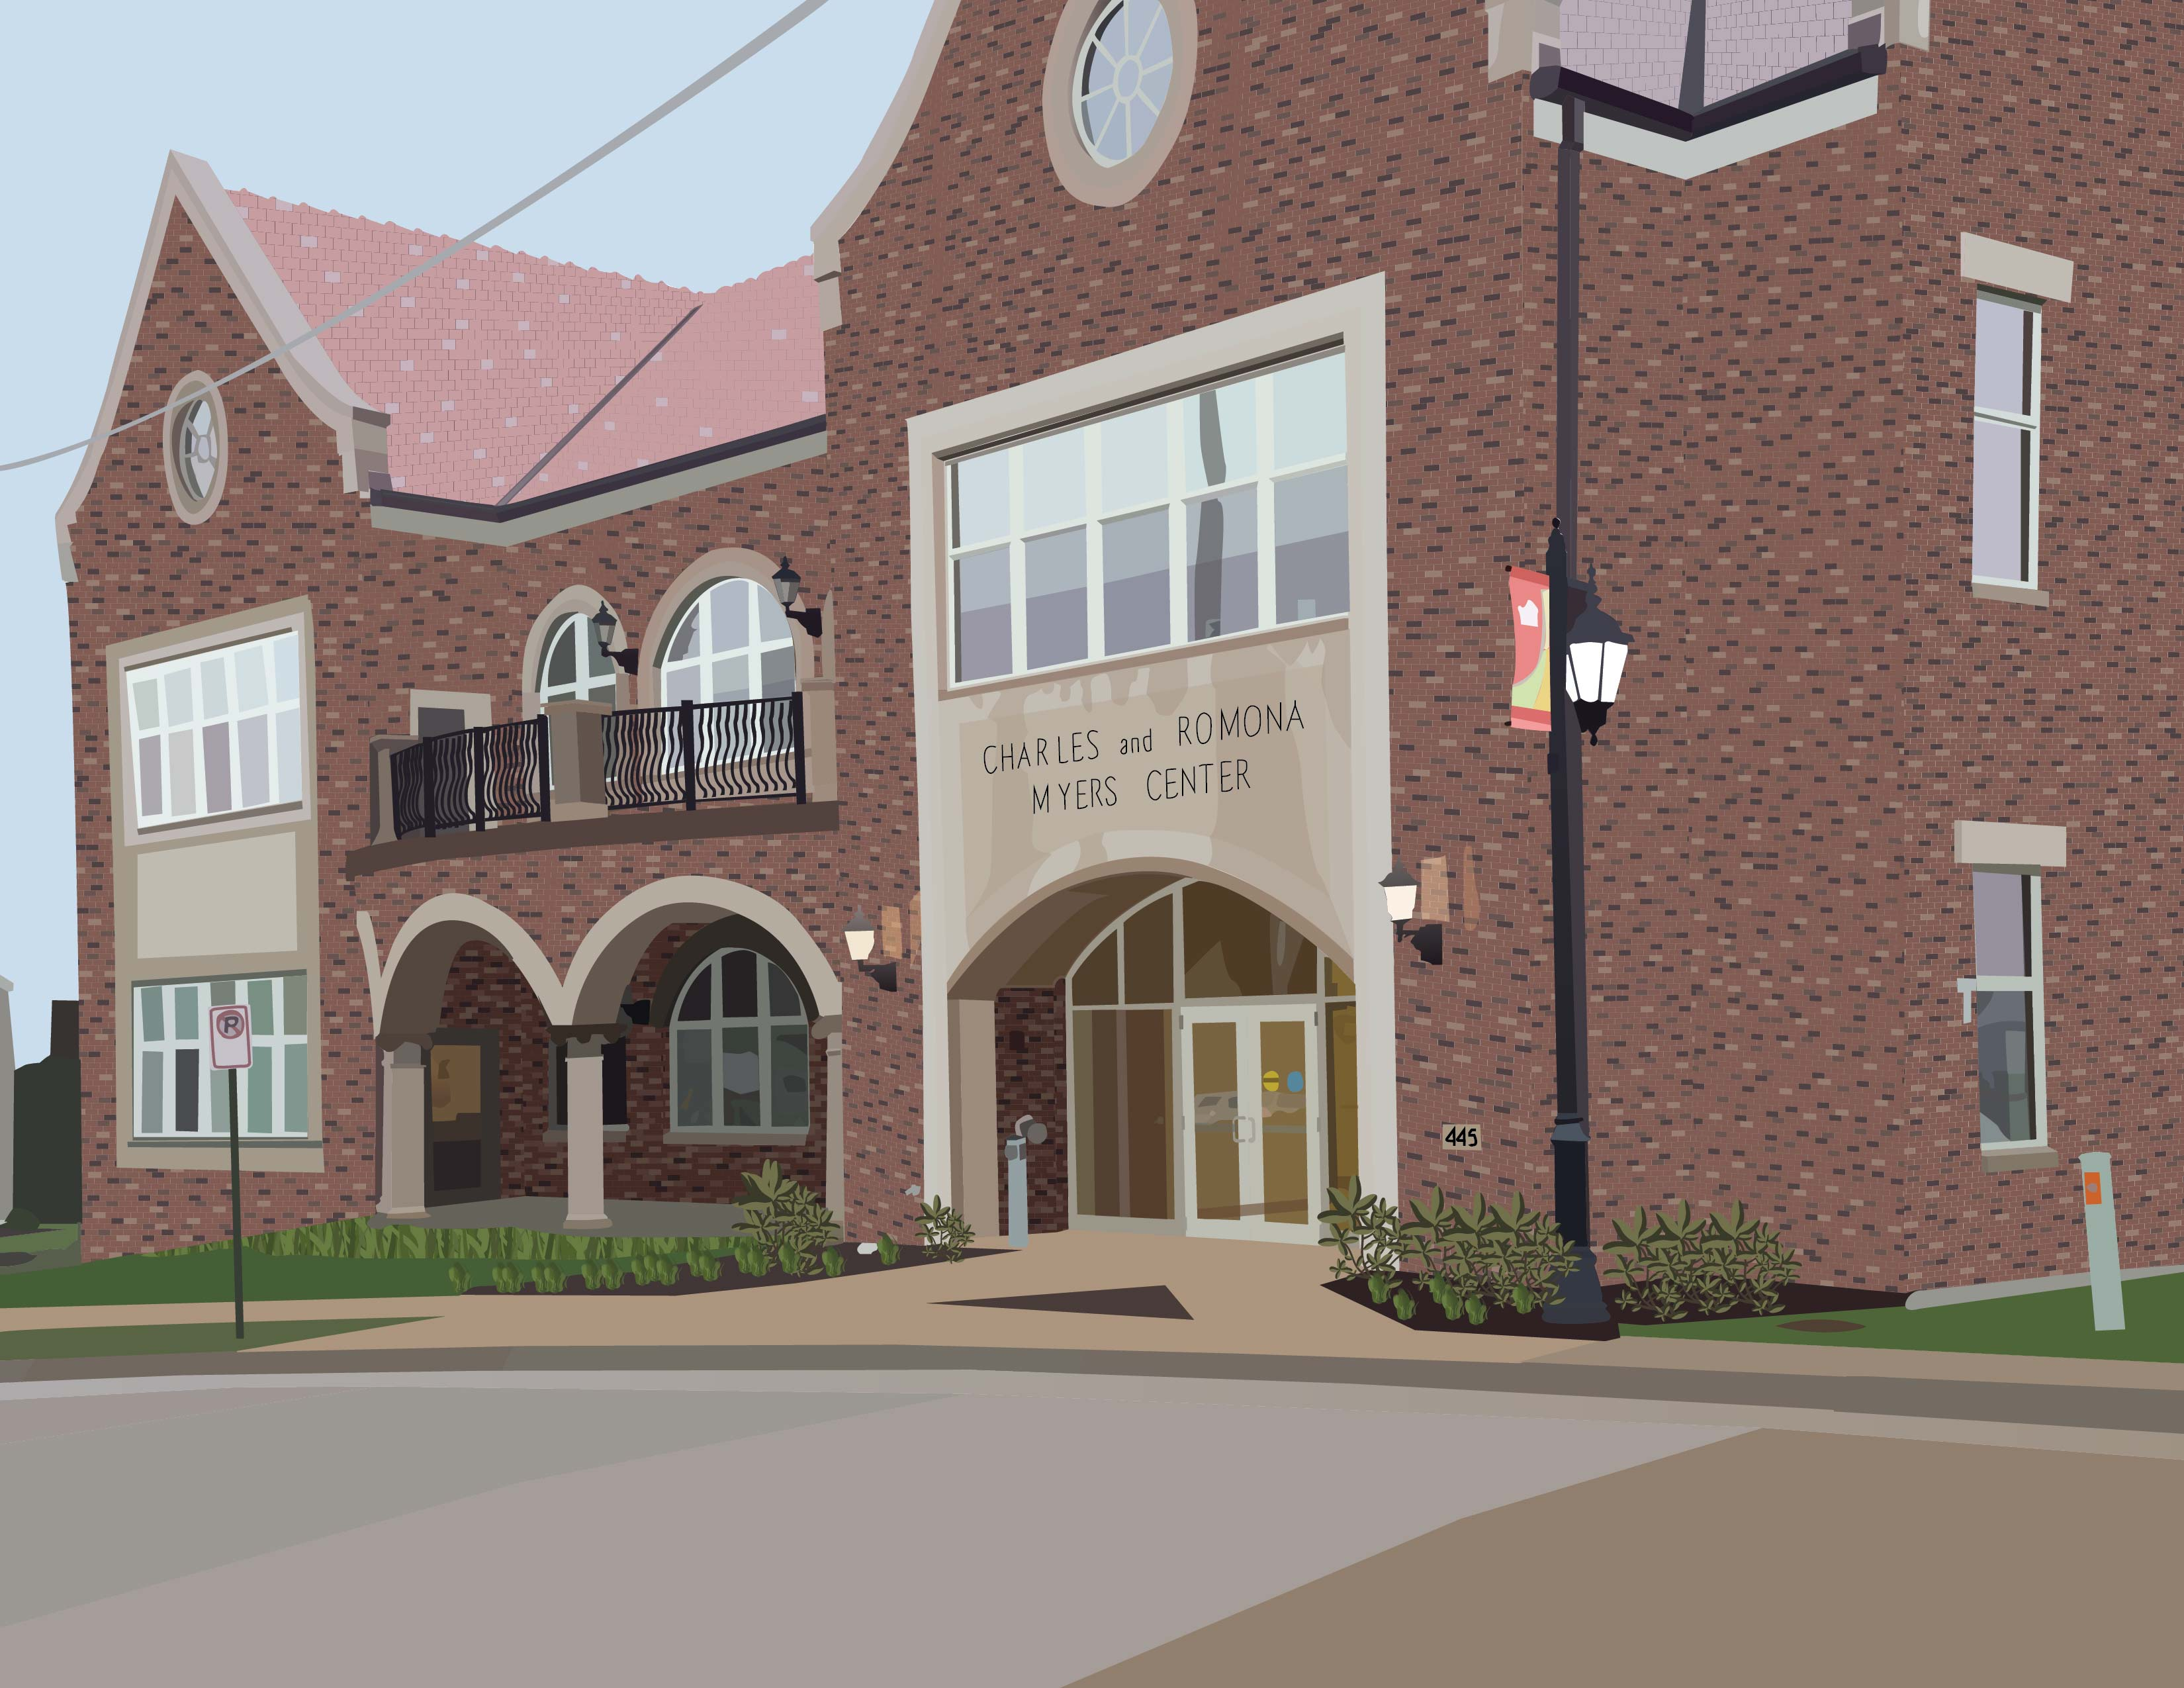 A detailed illustration of the Myers Center, located on the University of Dubuque campus.